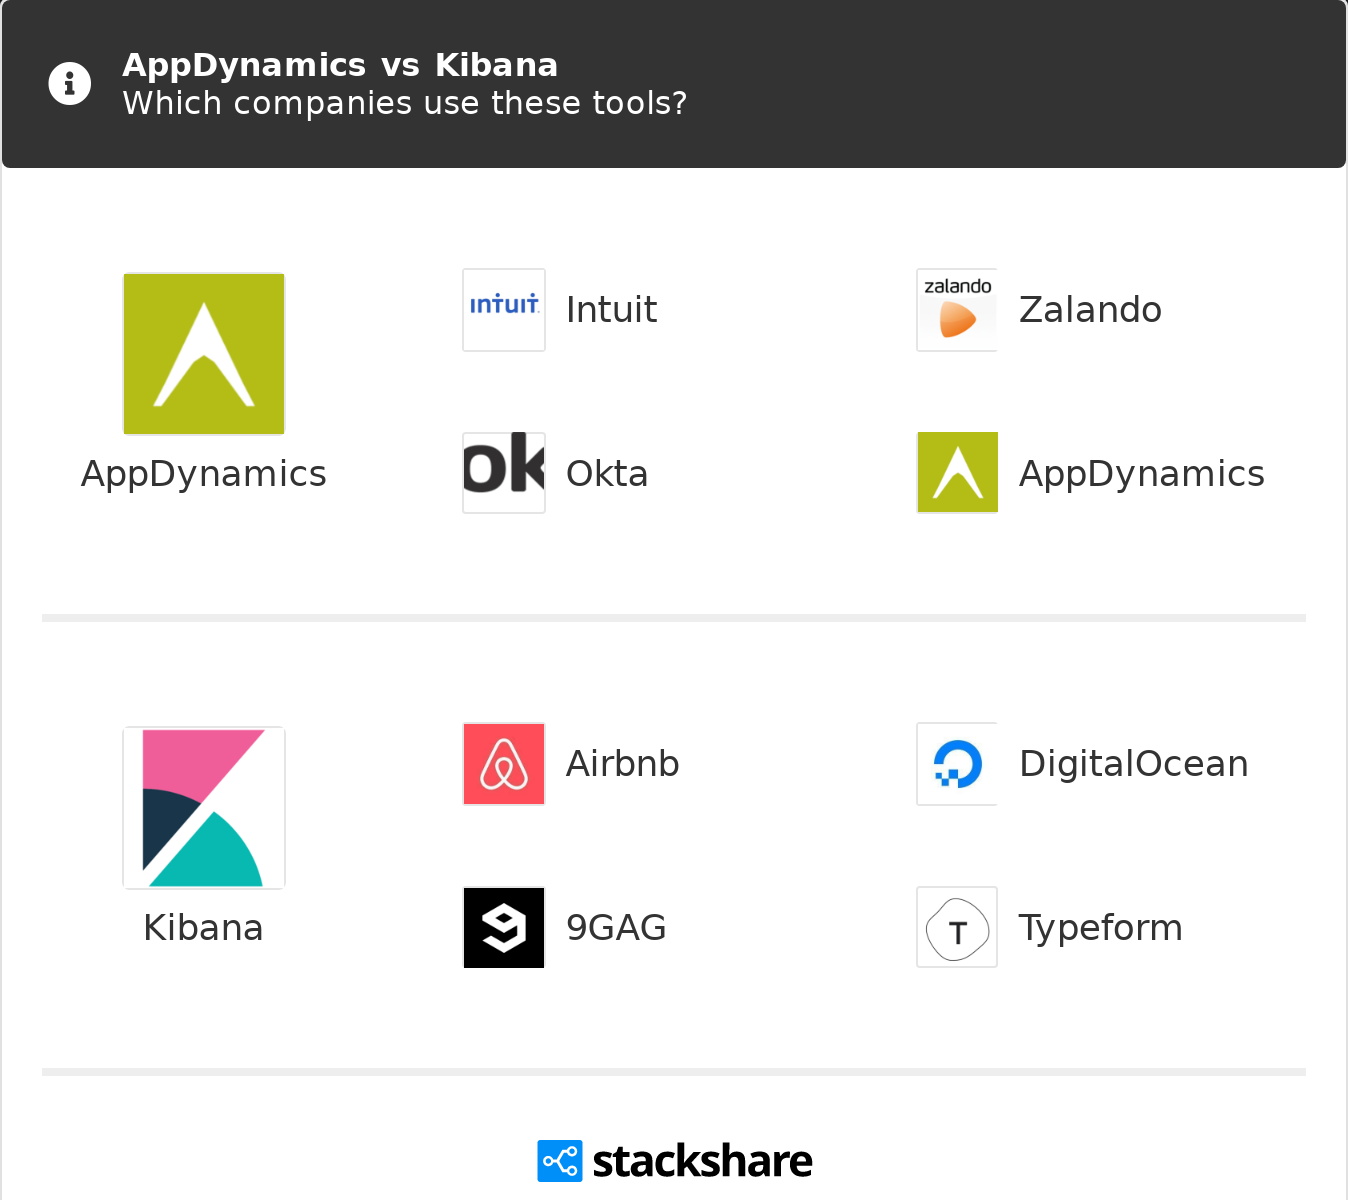 AppDynamics vs Kibana | What are the differences?